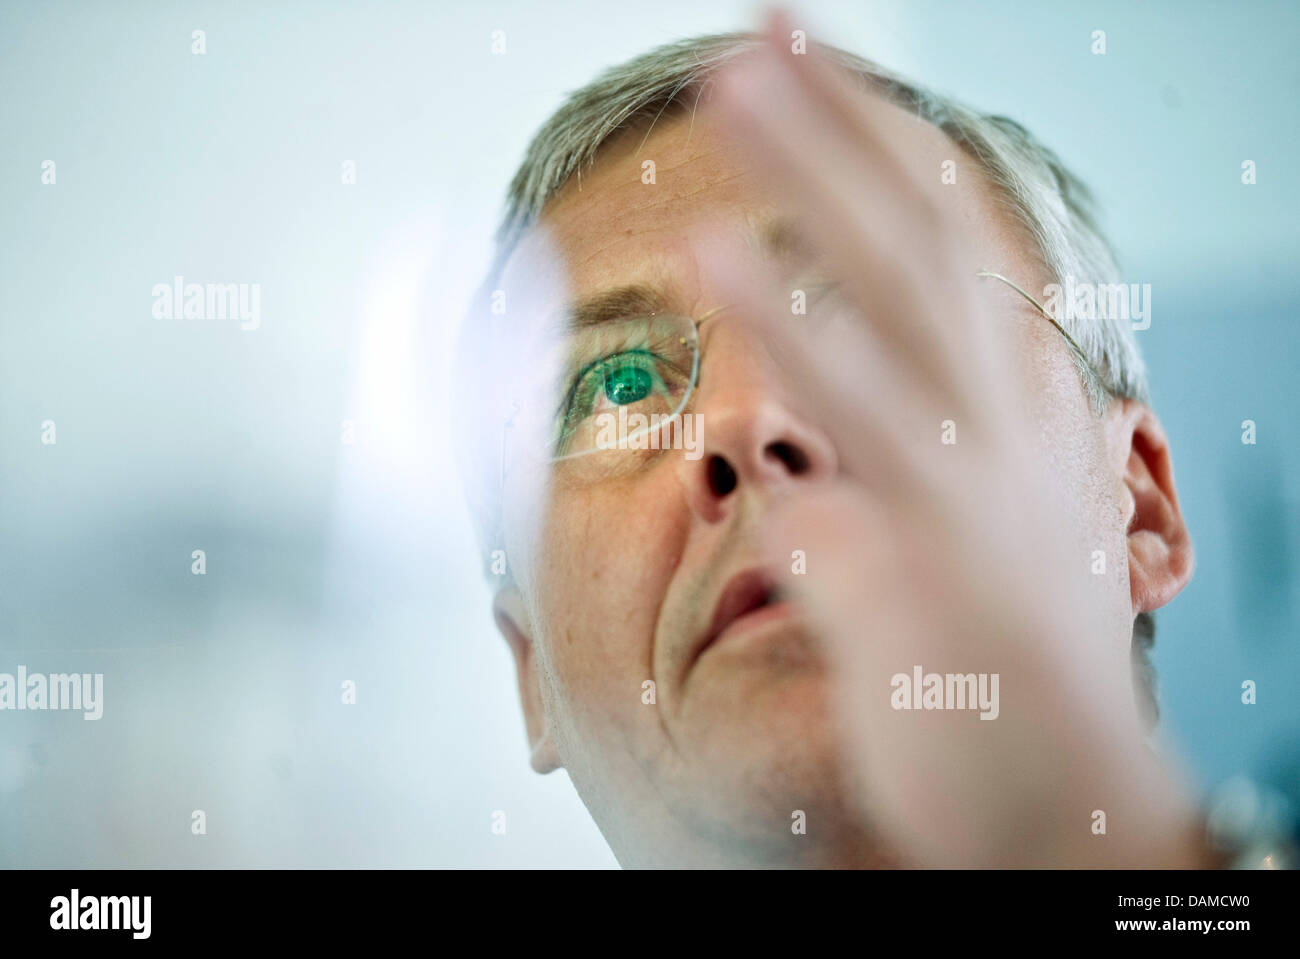 Grohe Ag Hemer grohe stock photos grohe stock images alamy